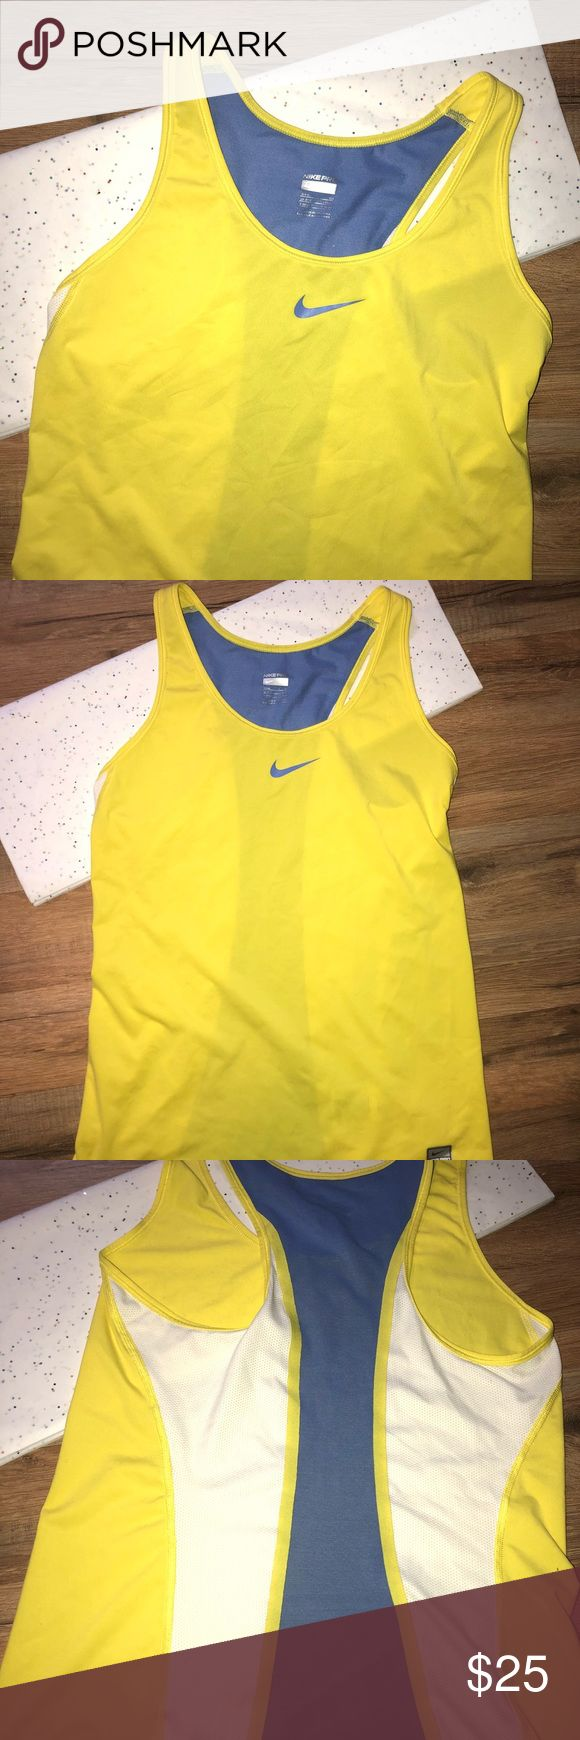 Nike Tank Top NWOT Women's yellow blue and white Nike tank top, size small, Nike Pro, NWOT✨✨ Nike Tops Tank Tops